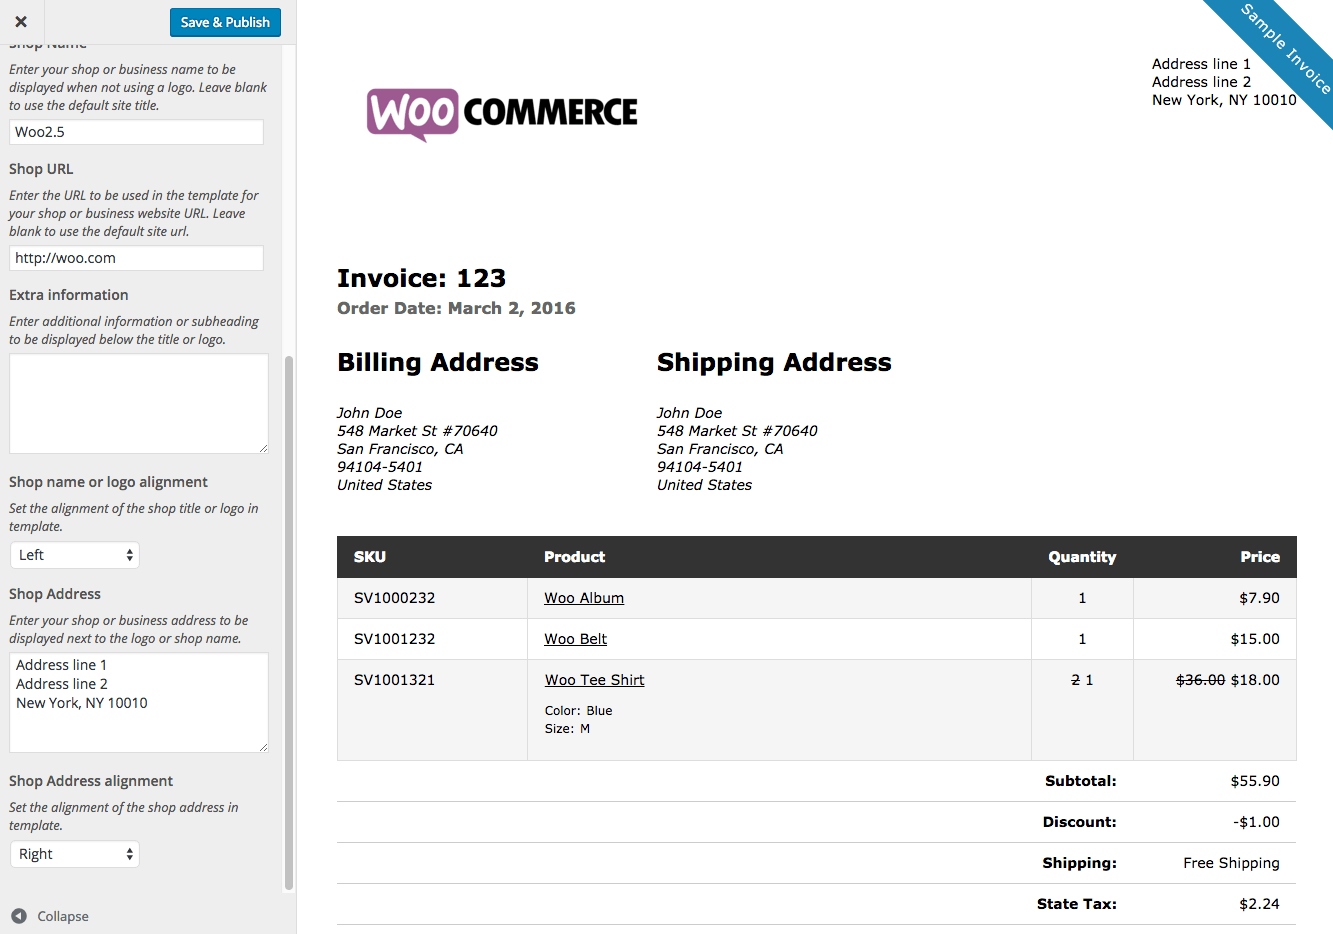 Centralasianshepherdus  Winsome Woocommerce Print Invoices Amp Packing Lists  Woocommerce Docs With Goodlooking Woocommerce Print Invoices  Packing Lists Customizer With Easy On The Eye How To Create A Invoice Also Invoice Templates Pdf In Addition Invoice Ebay And New Car Invoice Price As Well As Pay Invoice Ebay Additionally Ebay Invoices From Docswoocommercecom With Centralasianshepherdus  Goodlooking Woocommerce Print Invoices Amp Packing Lists  Woocommerce Docs With Easy On The Eye Woocommerce Print Invoices  Packing Lists Customizer And Winsome How To Create A Invoice Also Invoice Templates Pdf In Addition Invoice Ebay From Docswoocommercecom